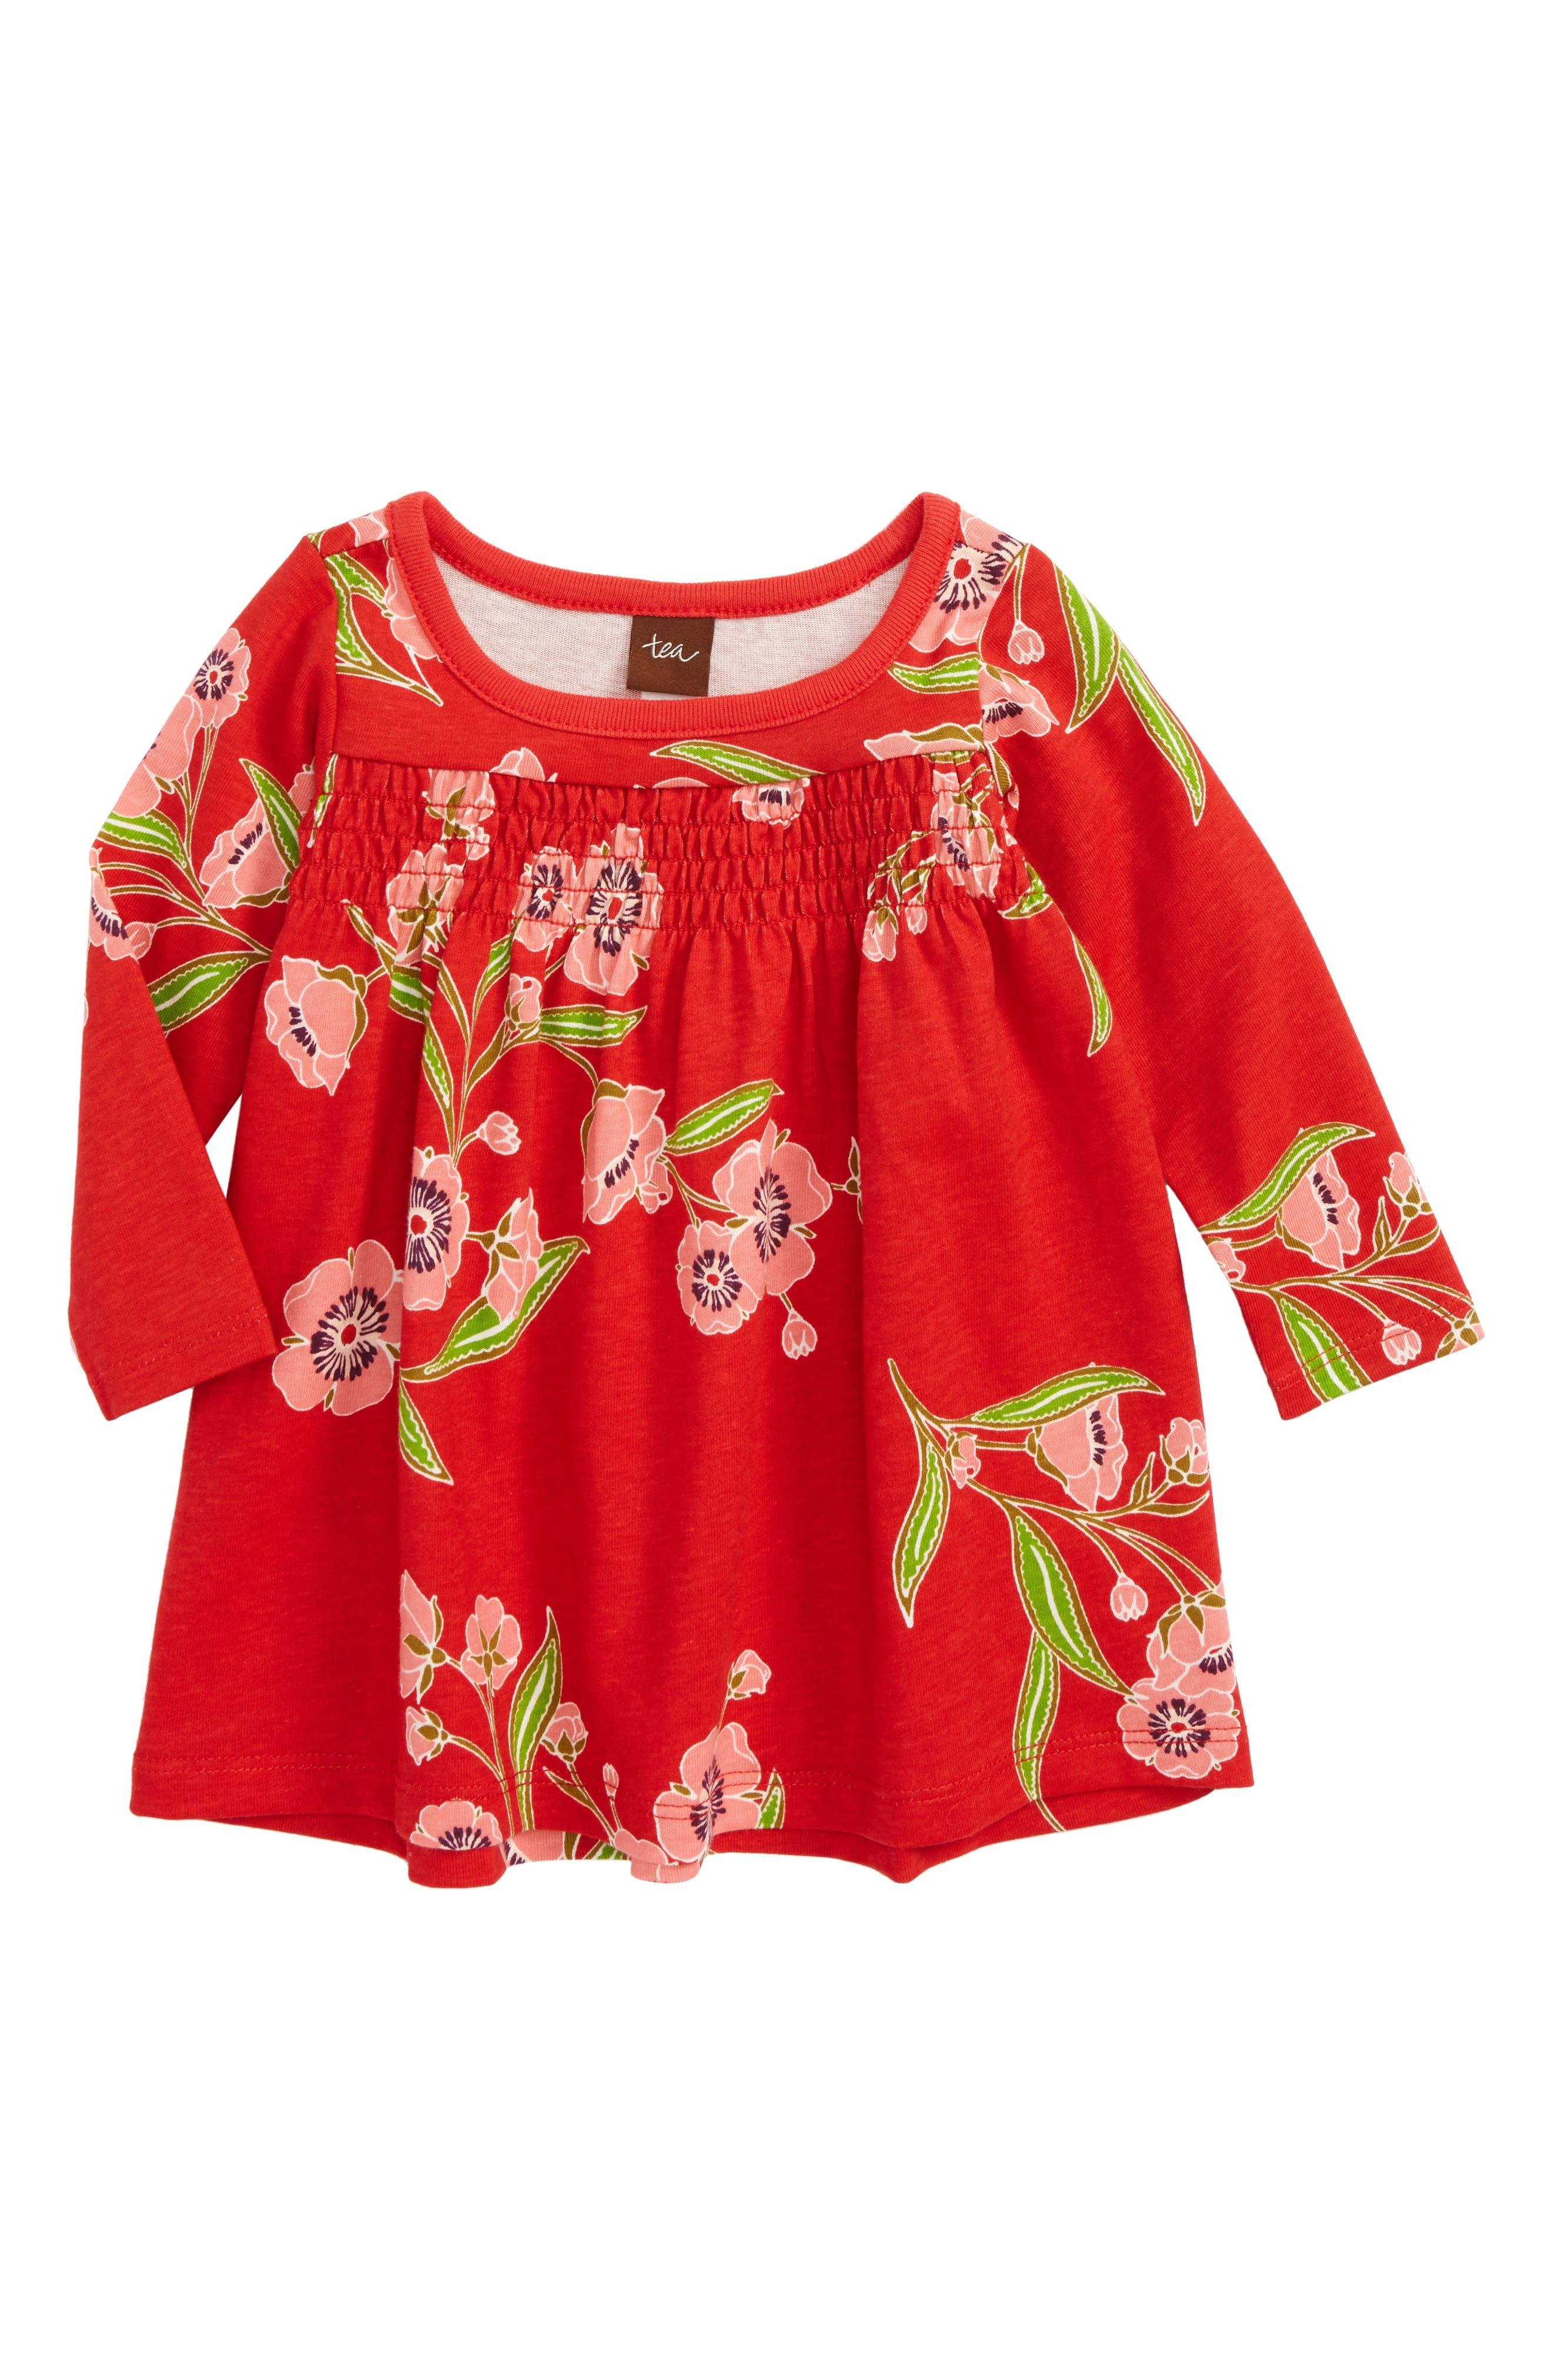 Main Image - Tea Collection Rowan Smocked Dress (Baby Girls)